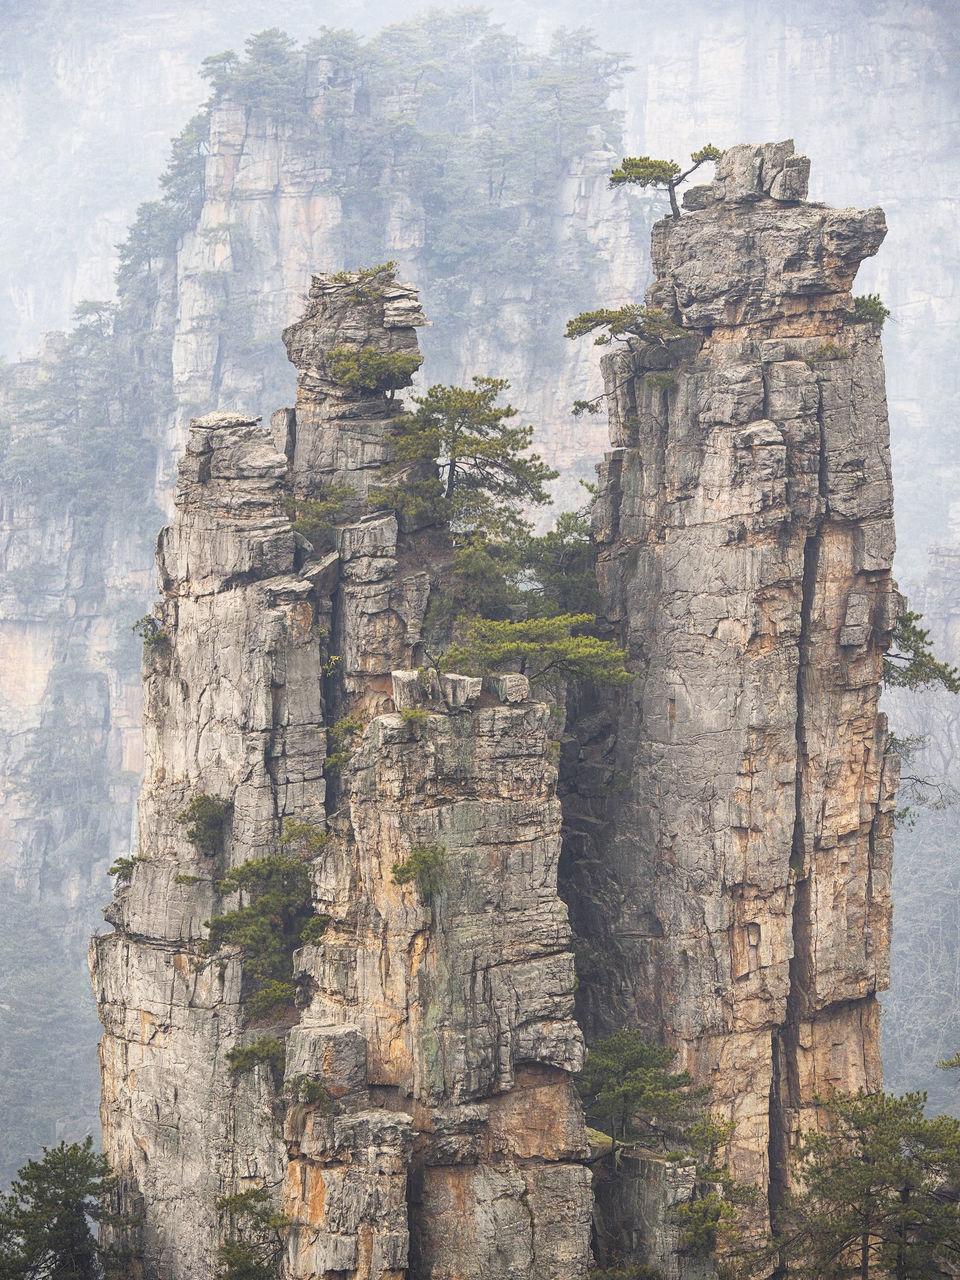 Rock Formations During Foggy Weather